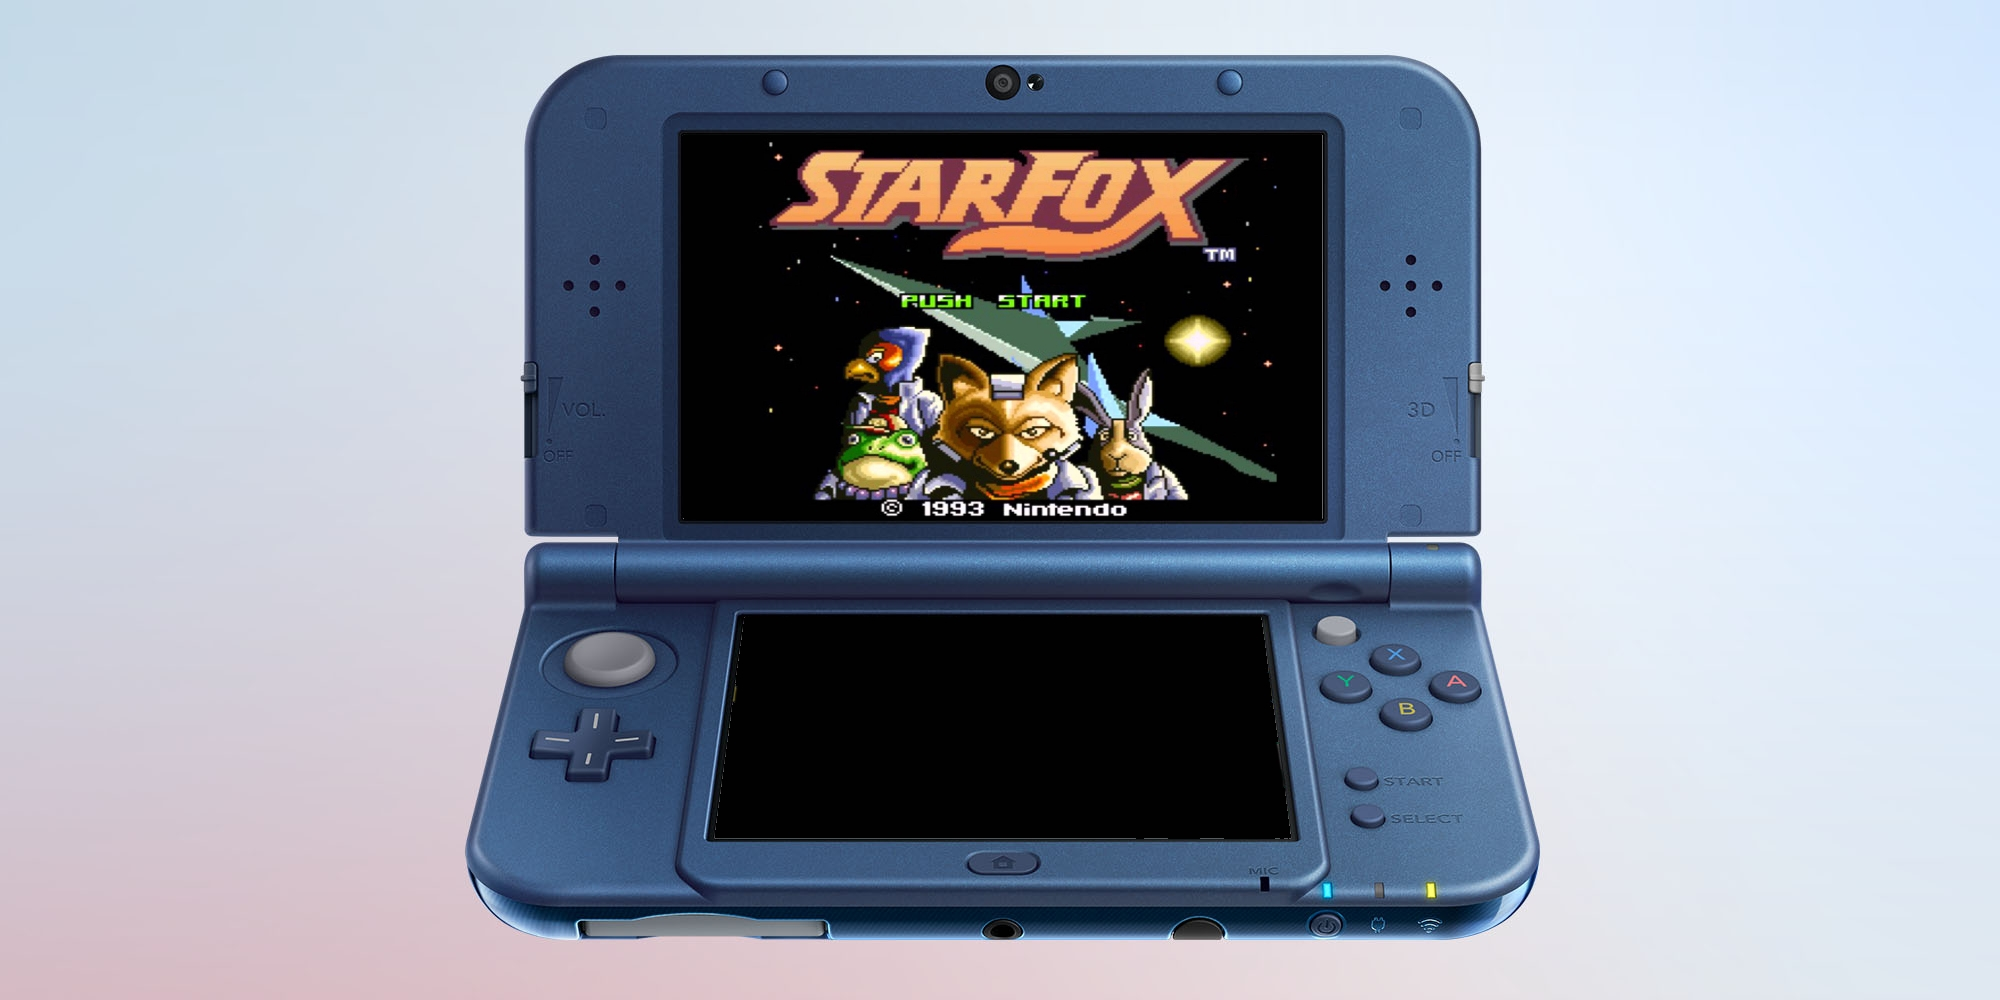 Nintendo Cancelled A 3DS Remake Of The Original SNES Star Fox | My